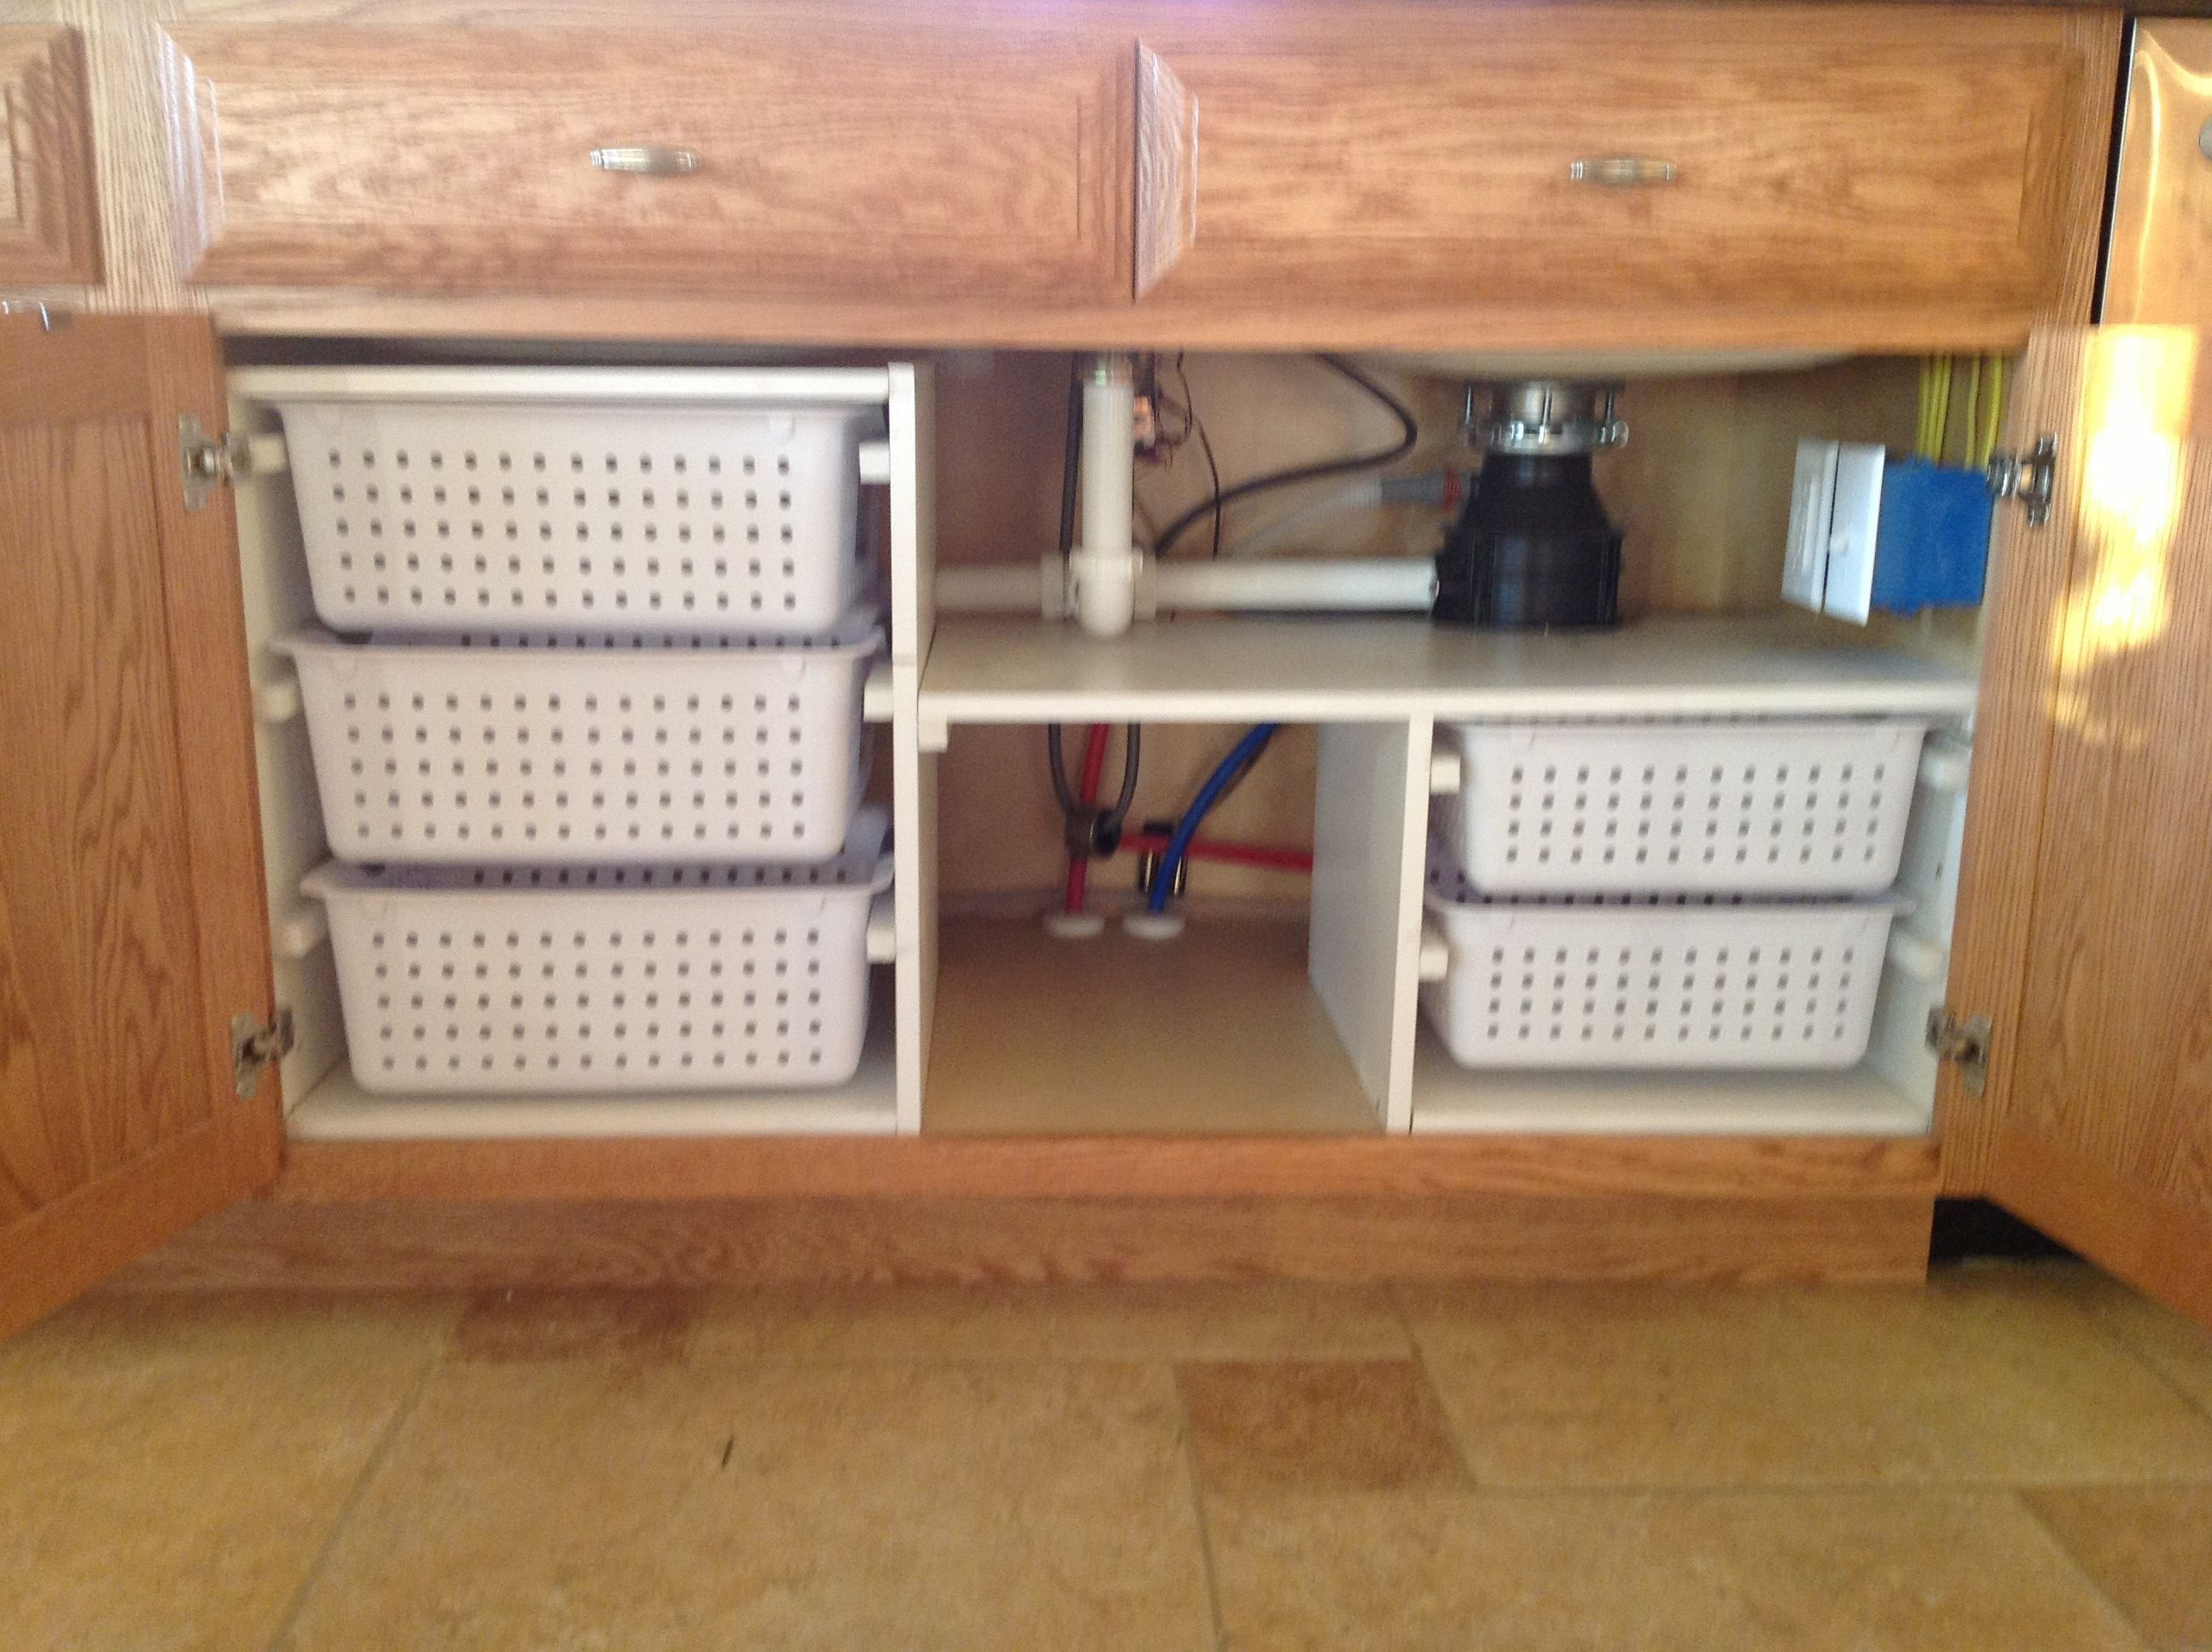 Bathroom Storage Is A Location Of The Home We Always Need To Service After That Yo Under Kitchen Sink Organization Under Kitchen Sinks Under Sink Organization